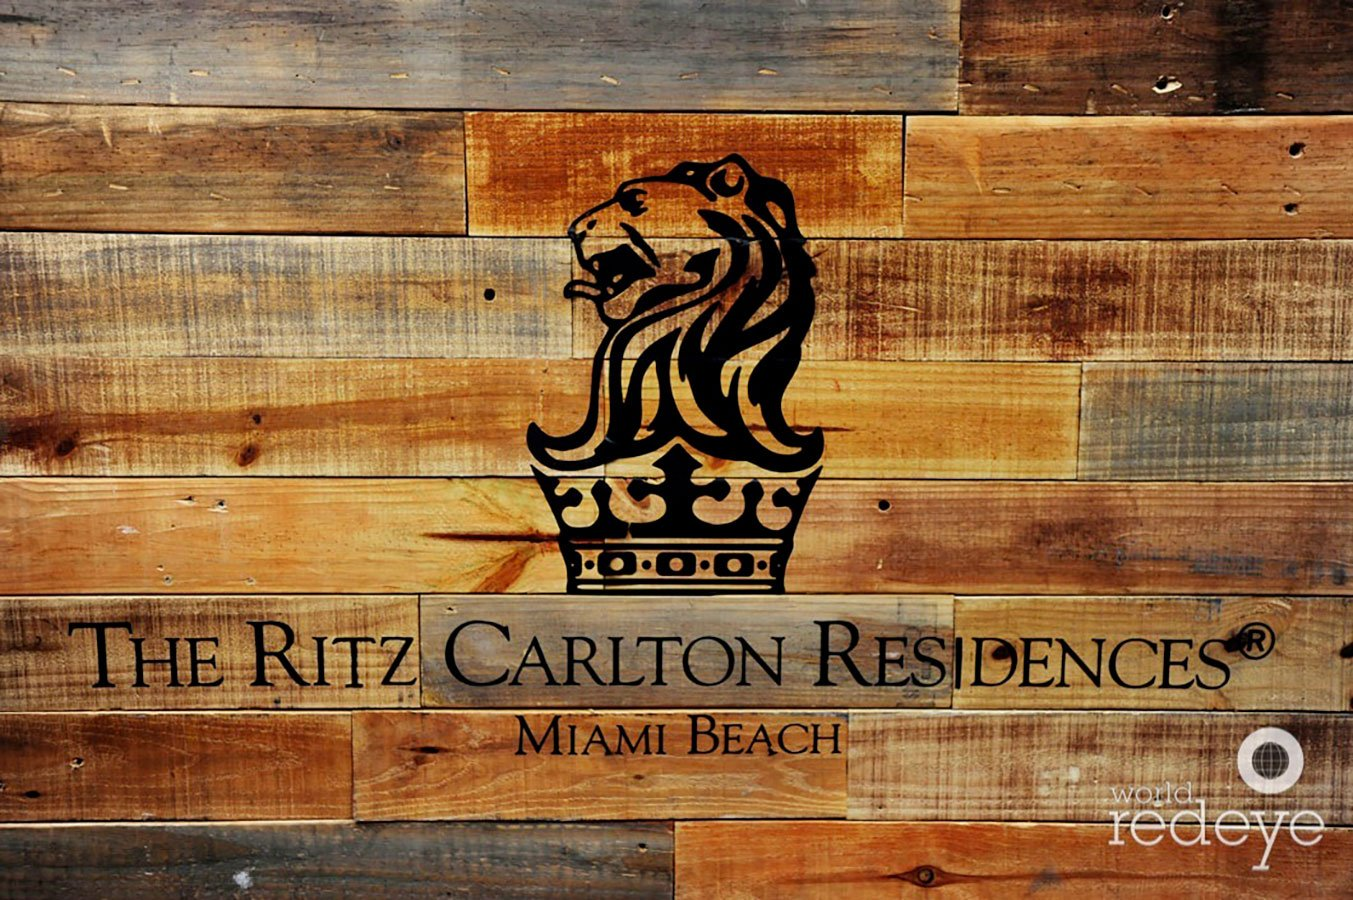 Ritz-Carlton Residences Miami Beach wood sign